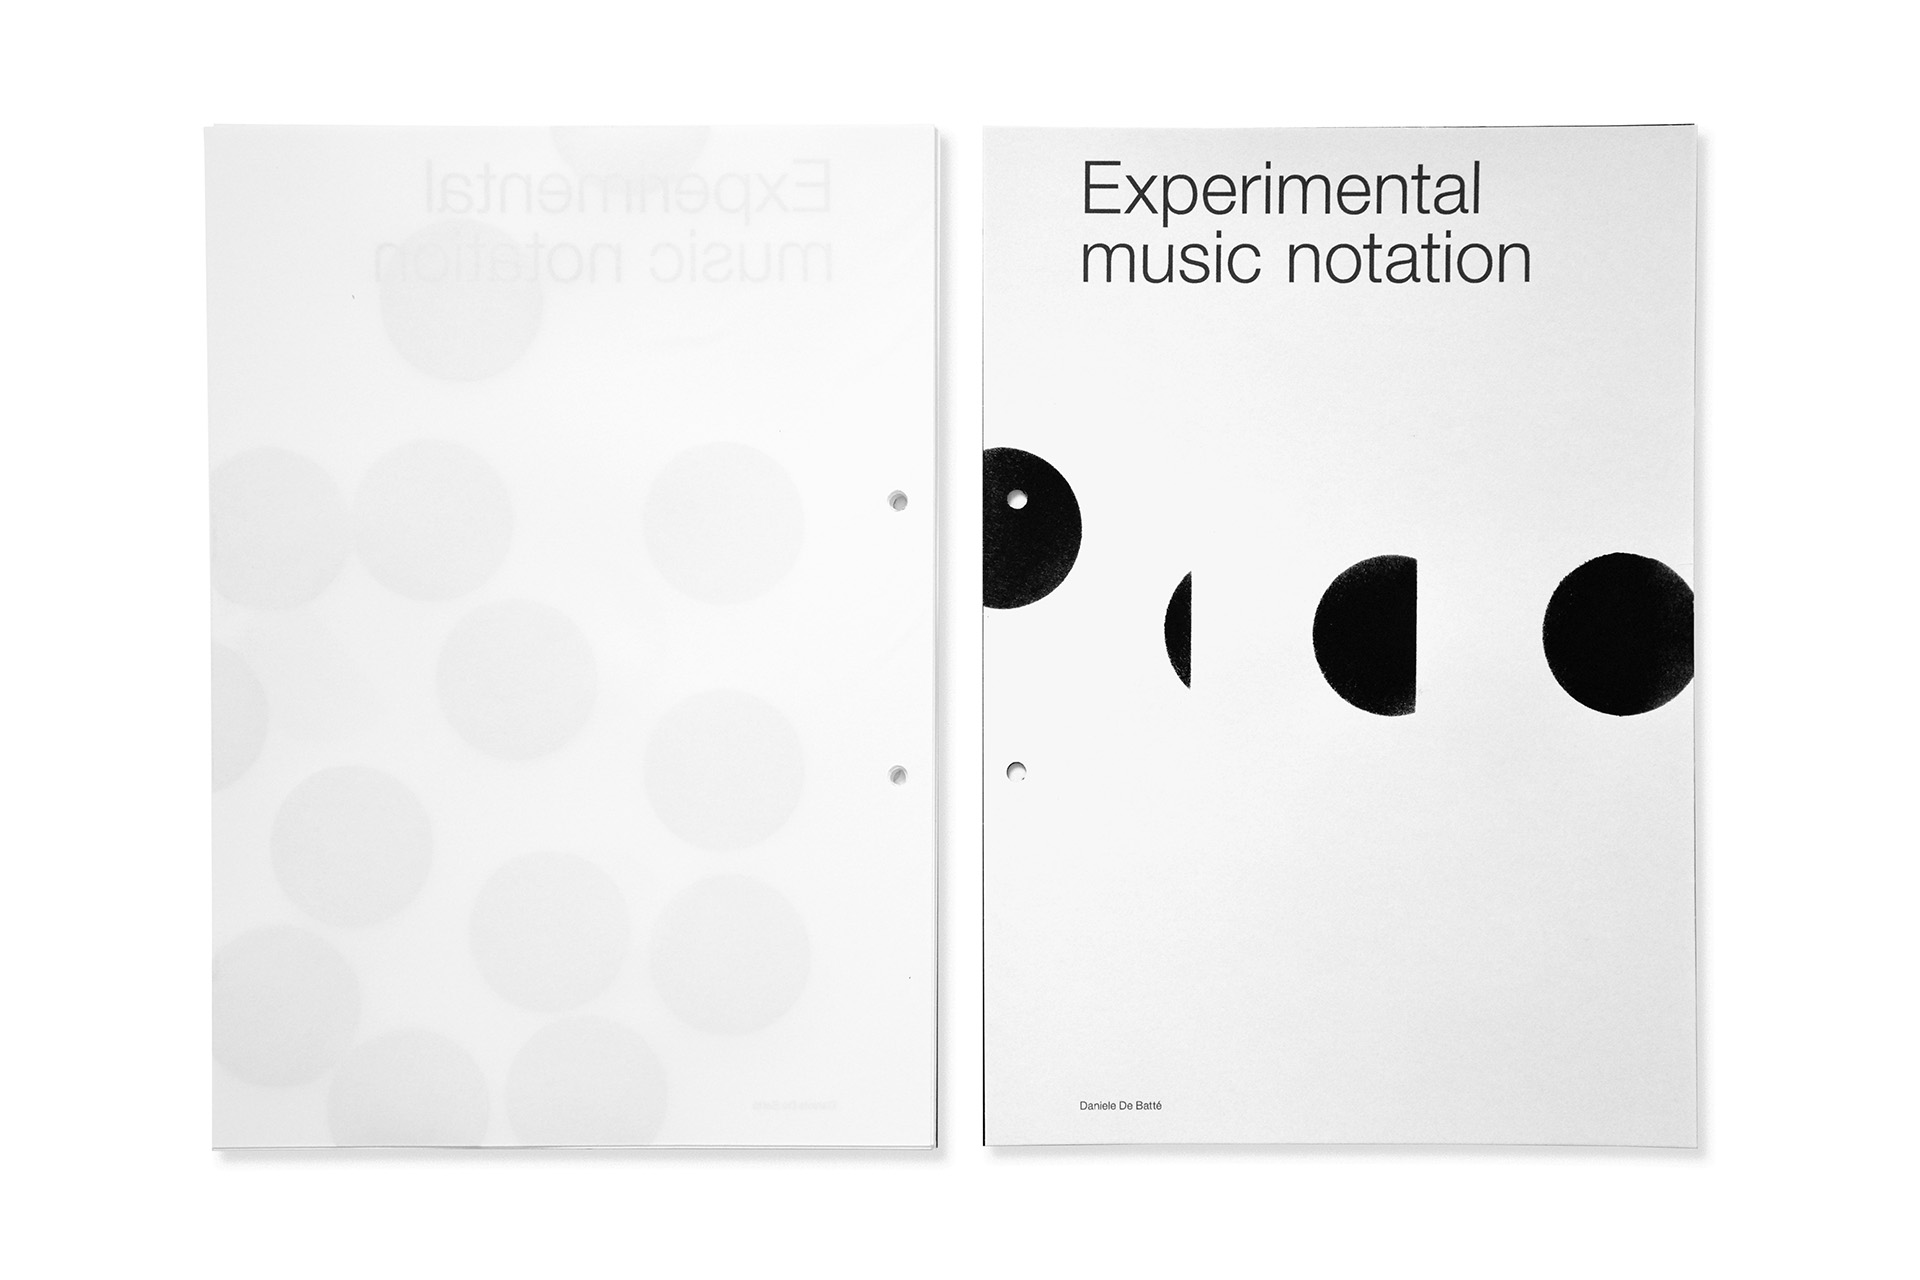 DDB Experimental music notation 27.6.2016